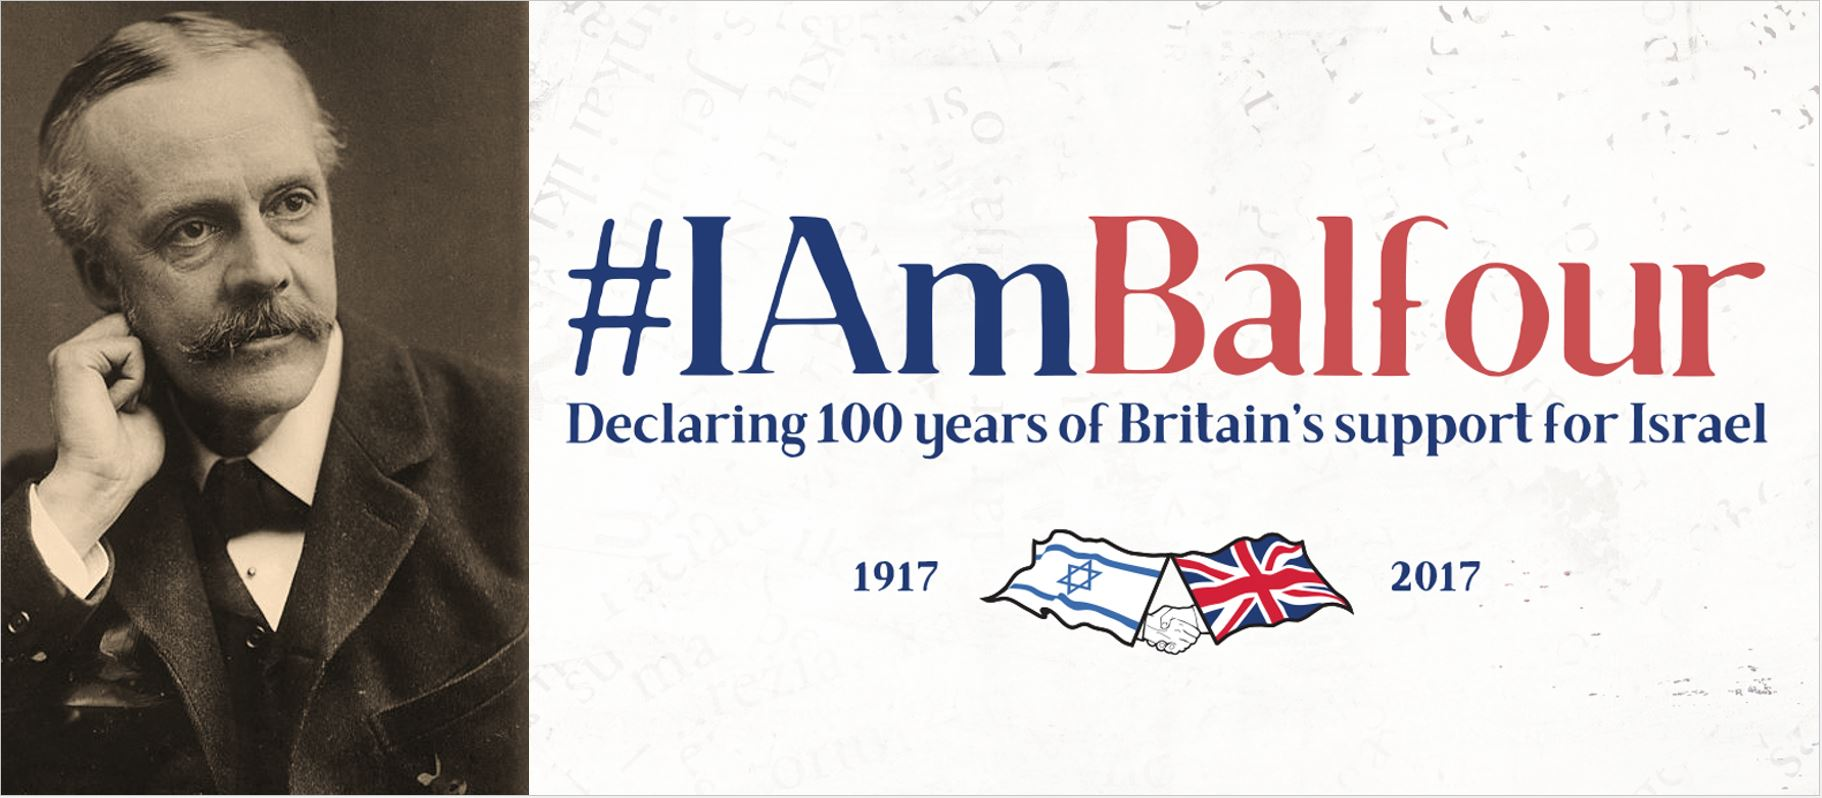 CUFI launches #IAmBalfour campaign, declaring 100 years of Britain's support for Israel